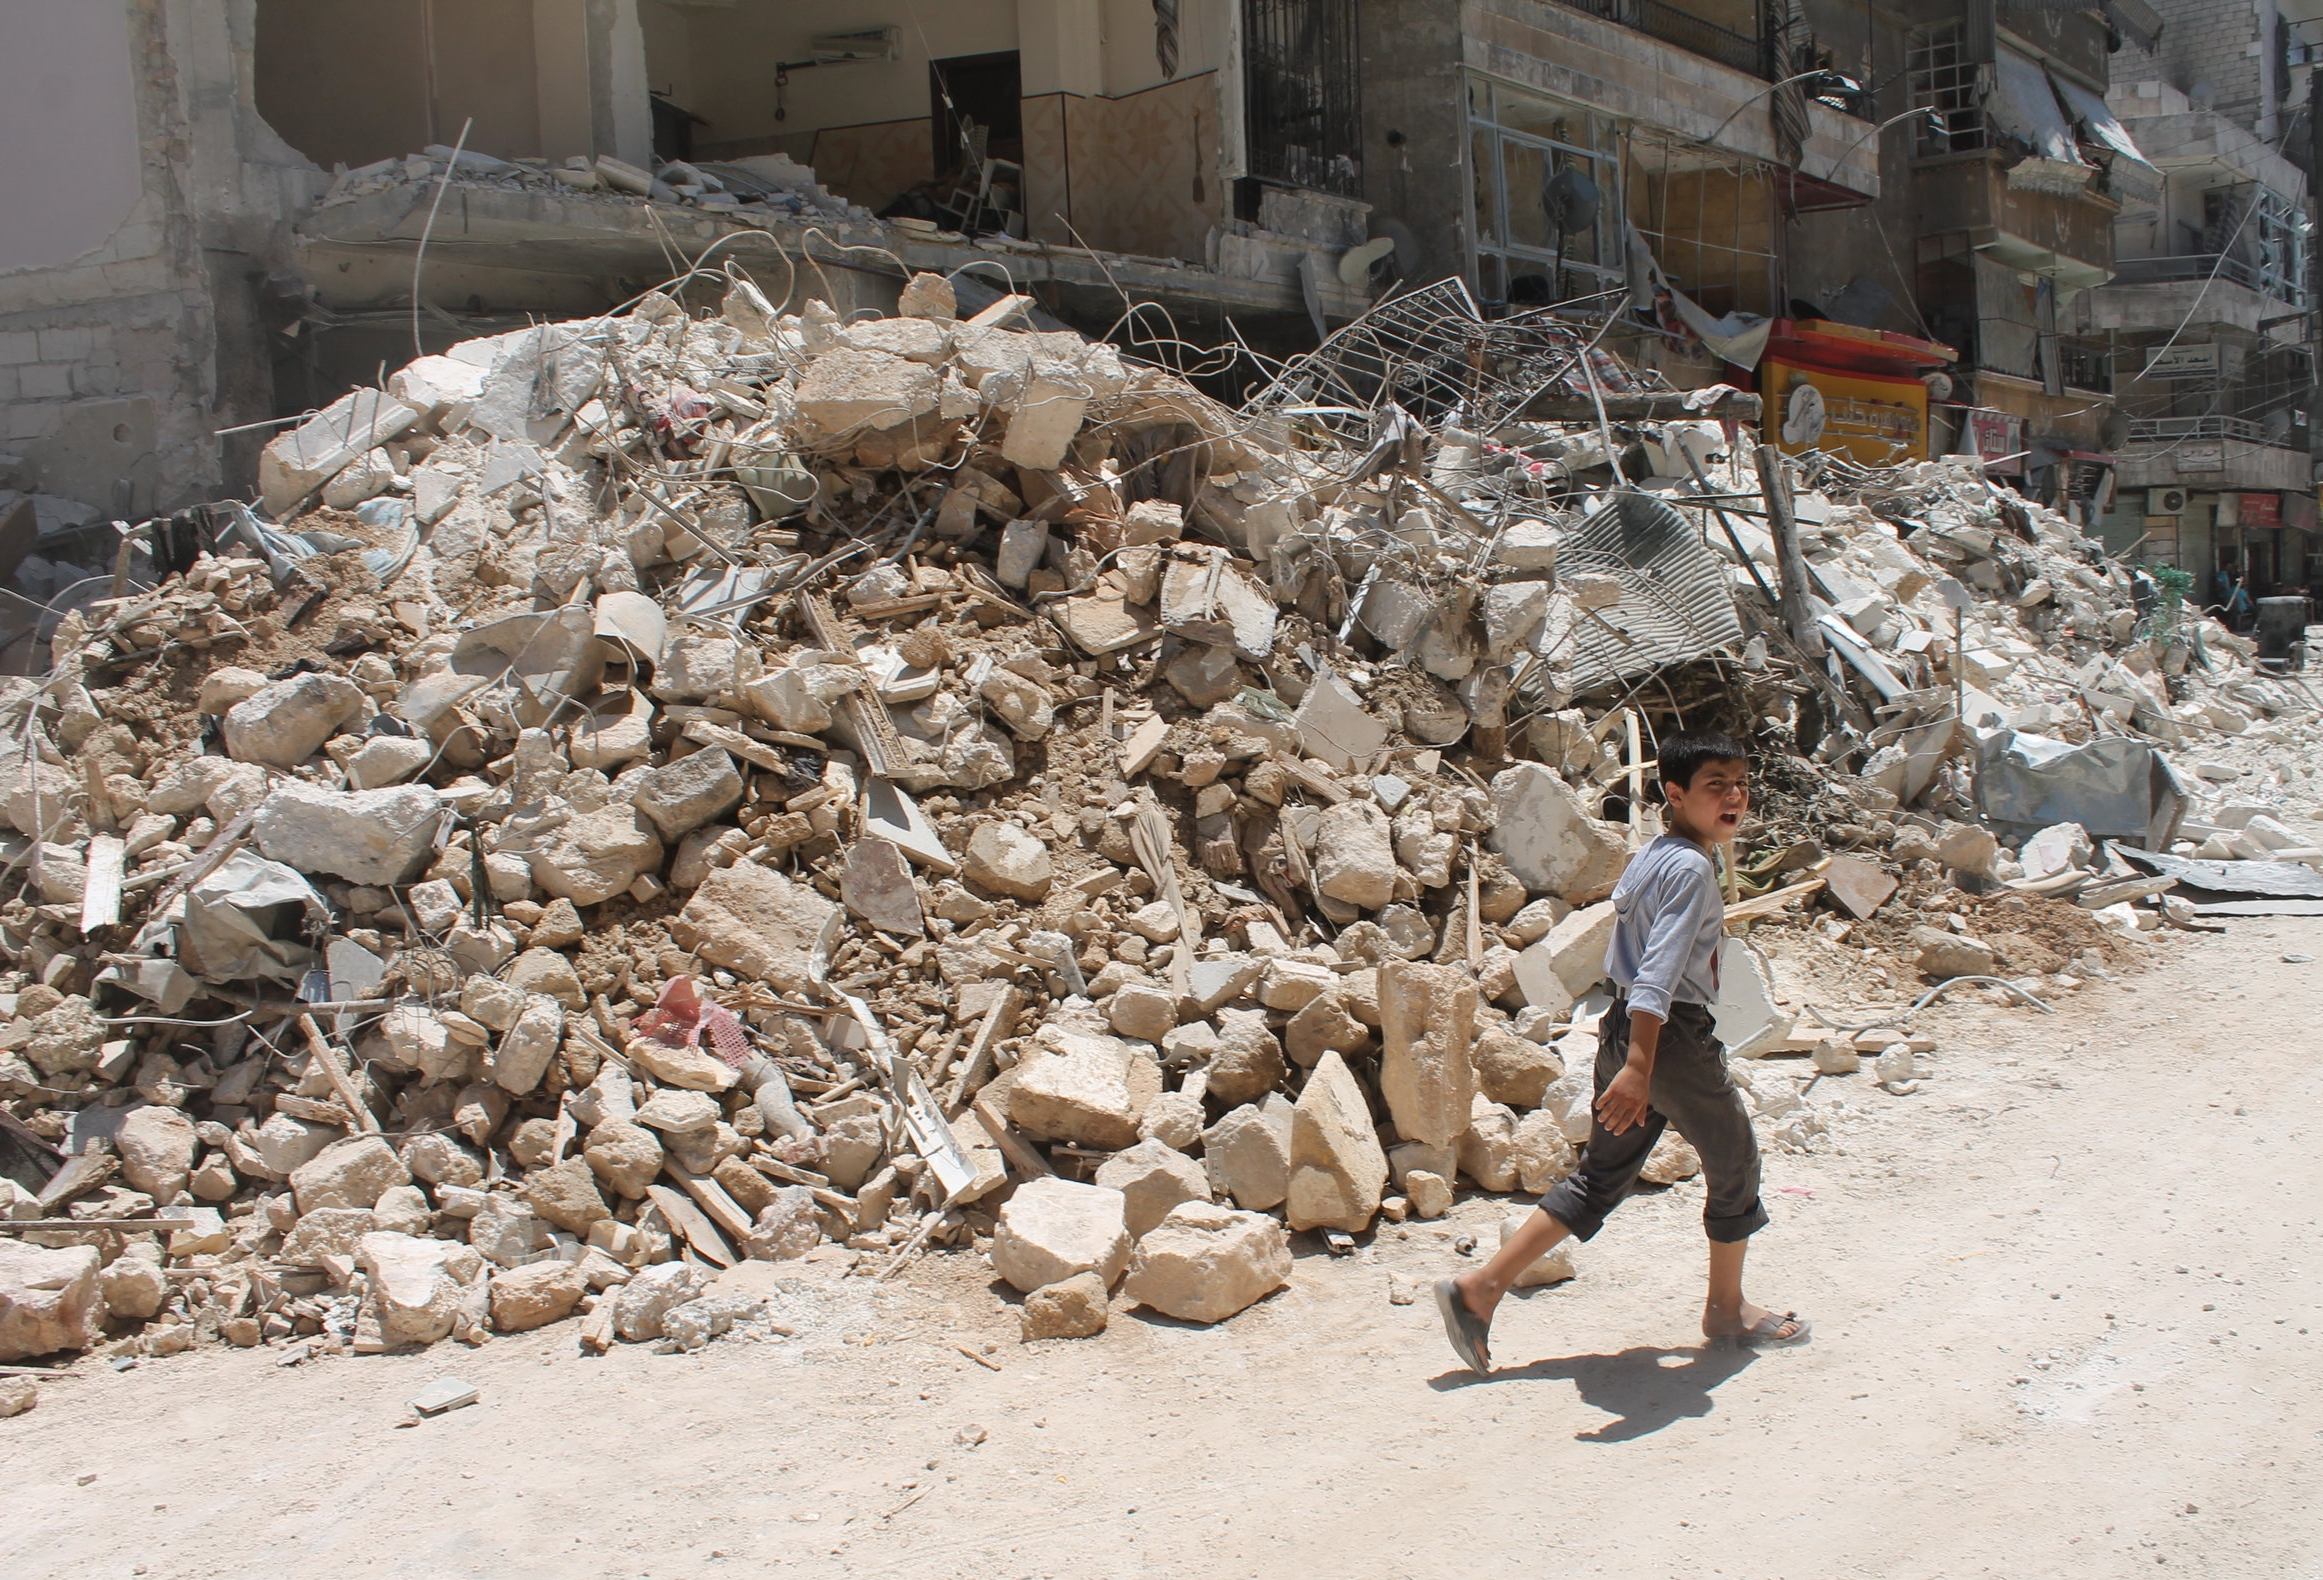 A scene of destruction in Aleppo after it was hit by government airstrikes in 2014. Image by Patrick Hilsman.